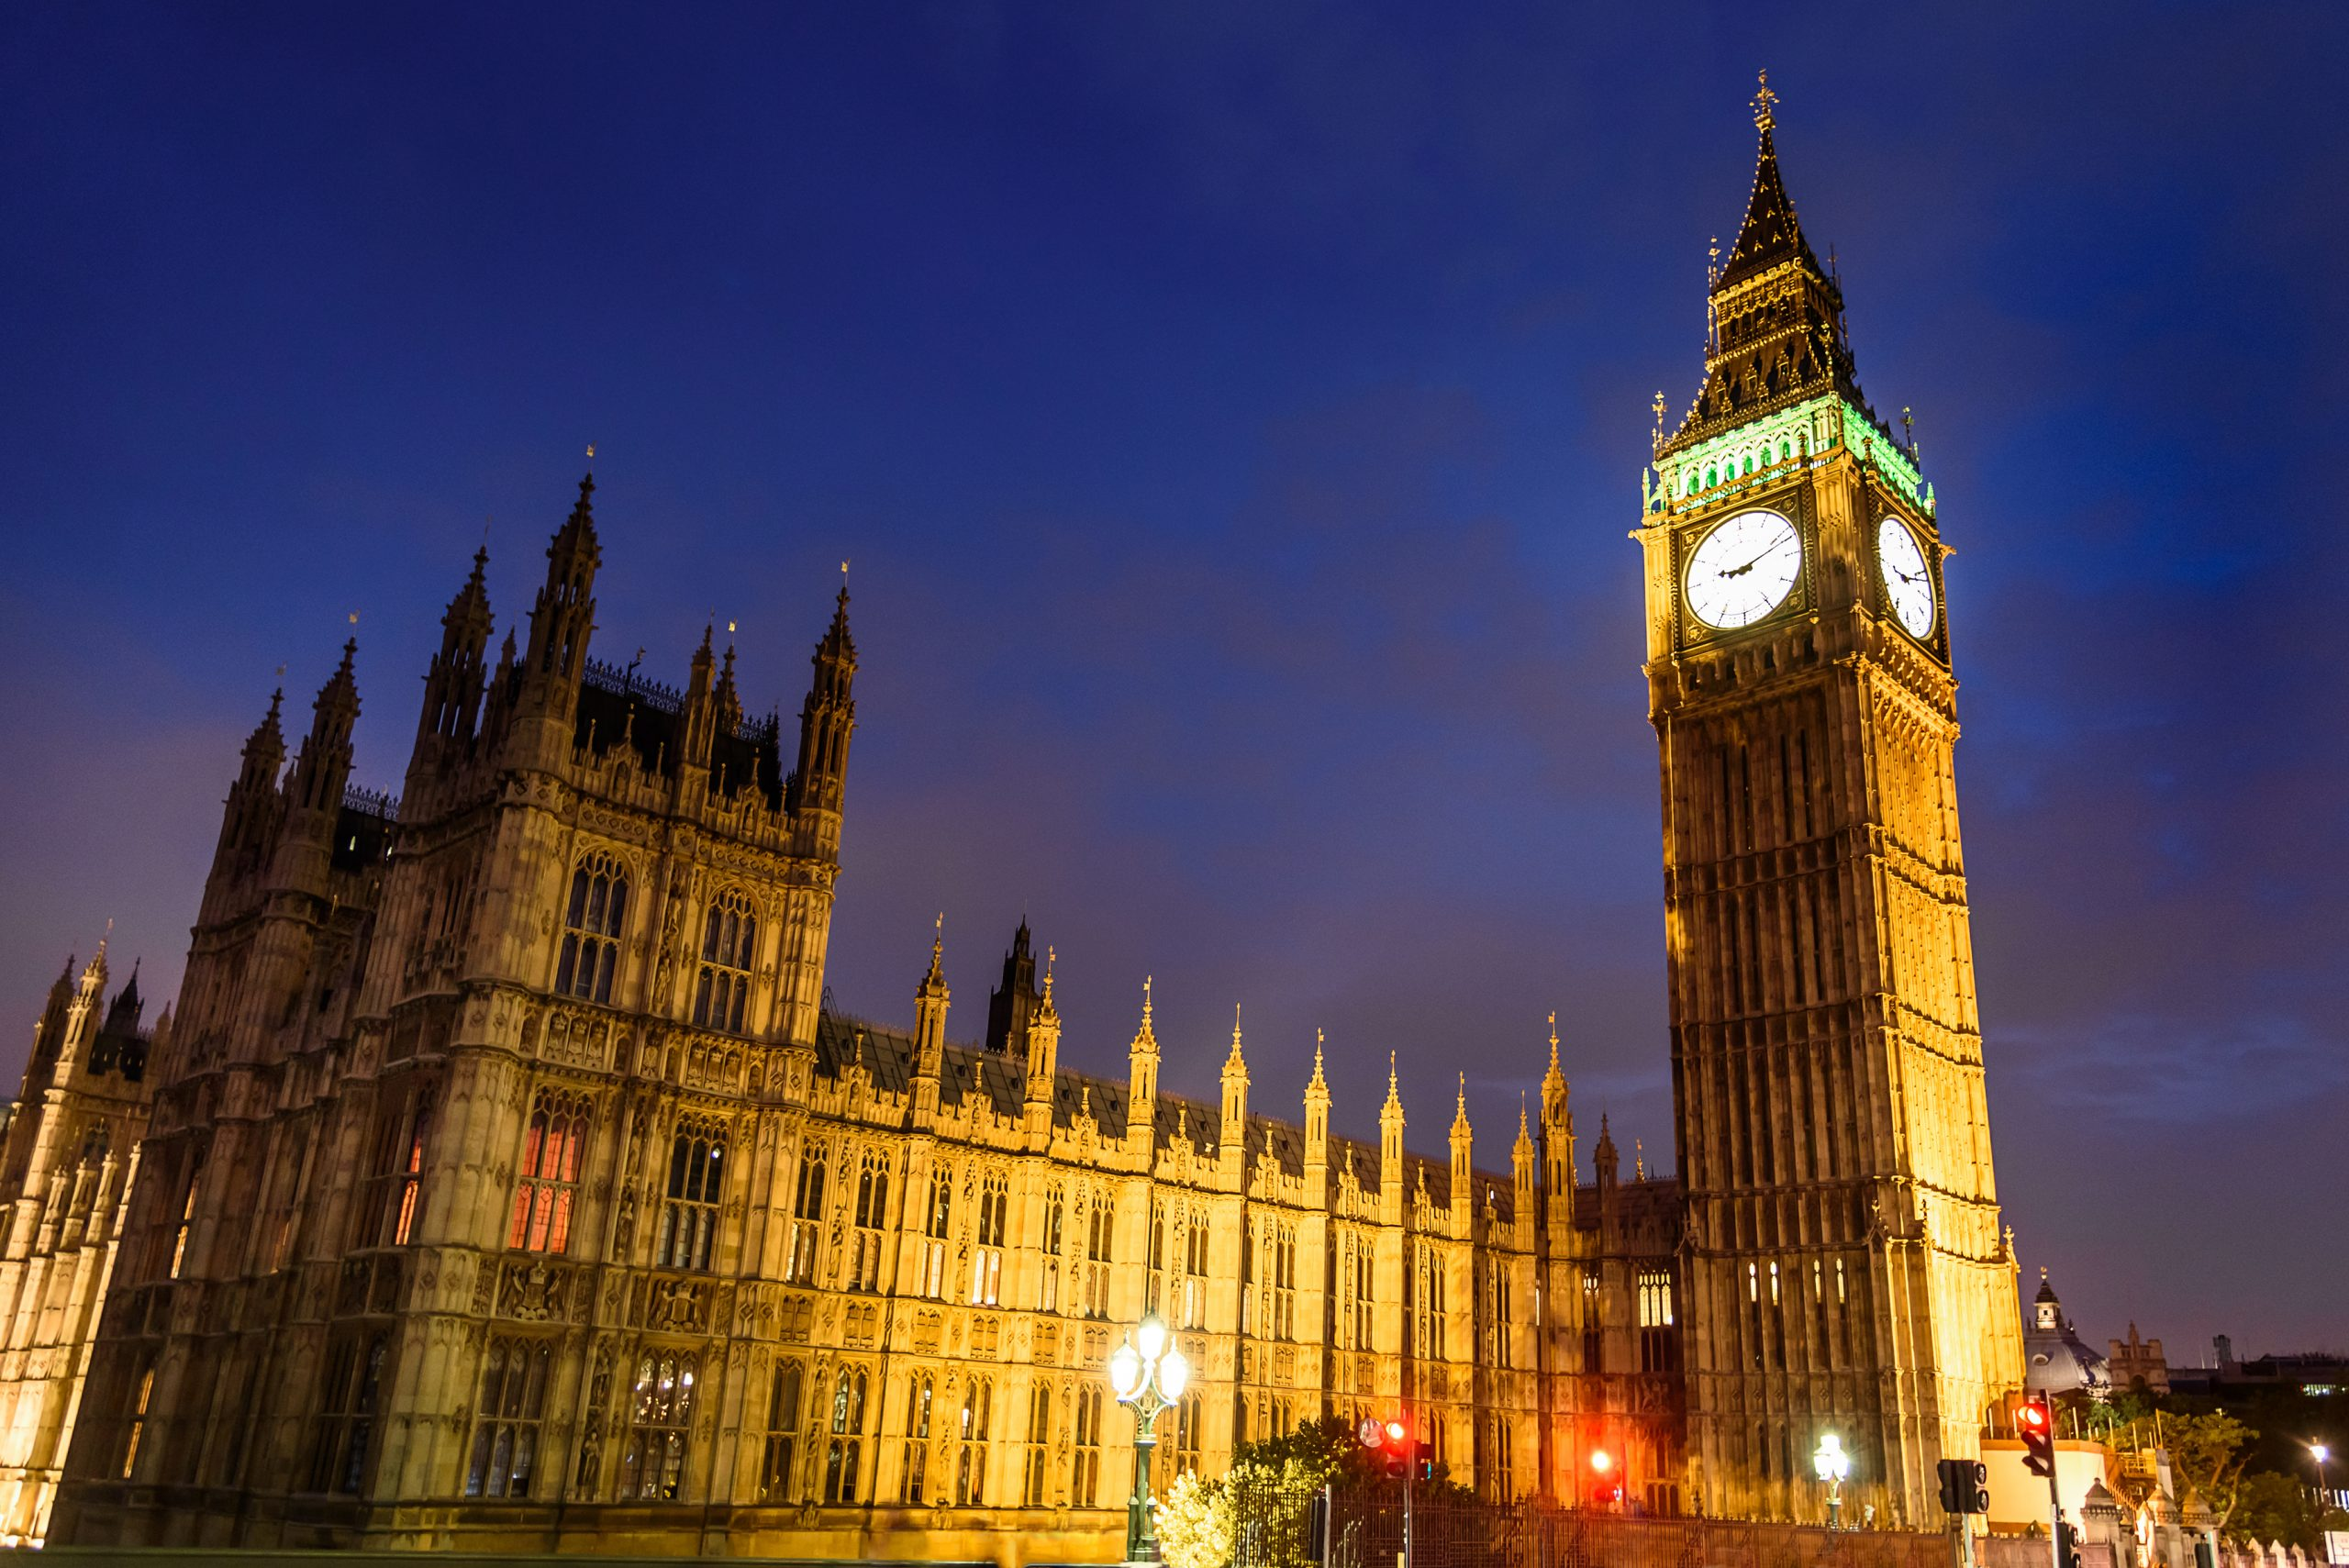 The government has published draft Finance Bill clauses